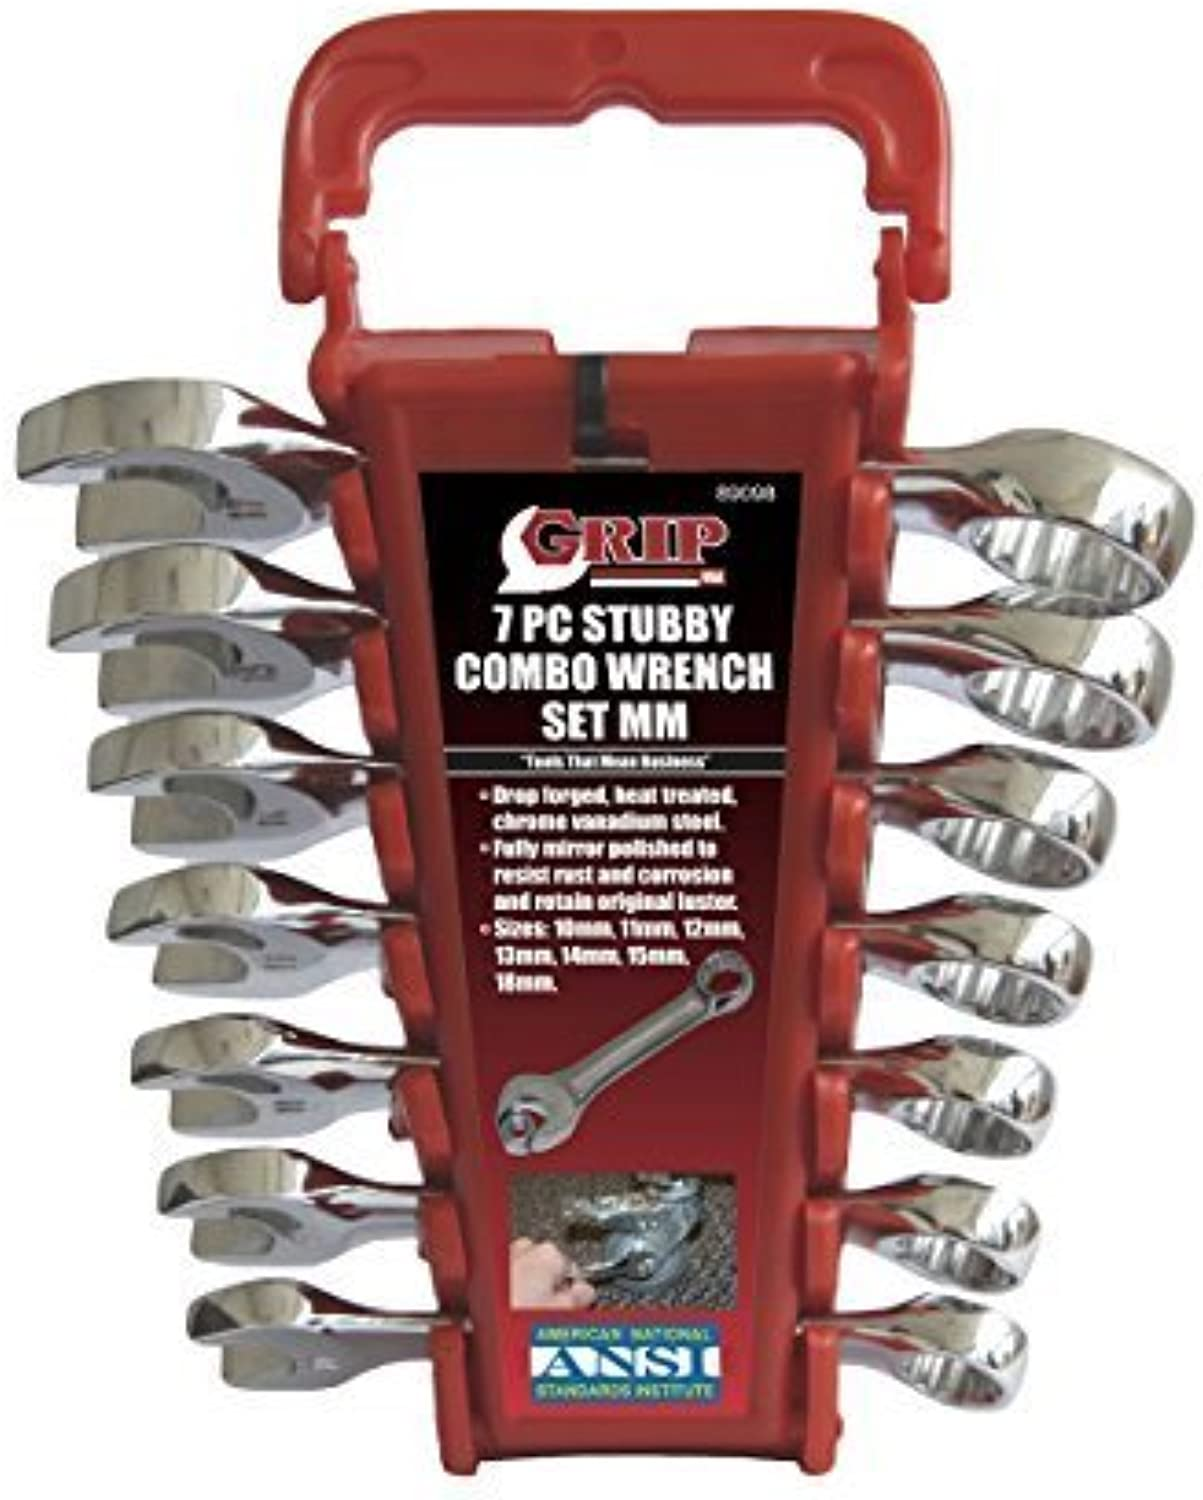 GRIP 89098 Stubby Combo Combo Combo Wrench Set, mm, 7-Piece by GRIP (GRAND RAPIDS INDUSTRIAL PRODUCTS) B0186M4L62   Am praktischsten  16857c